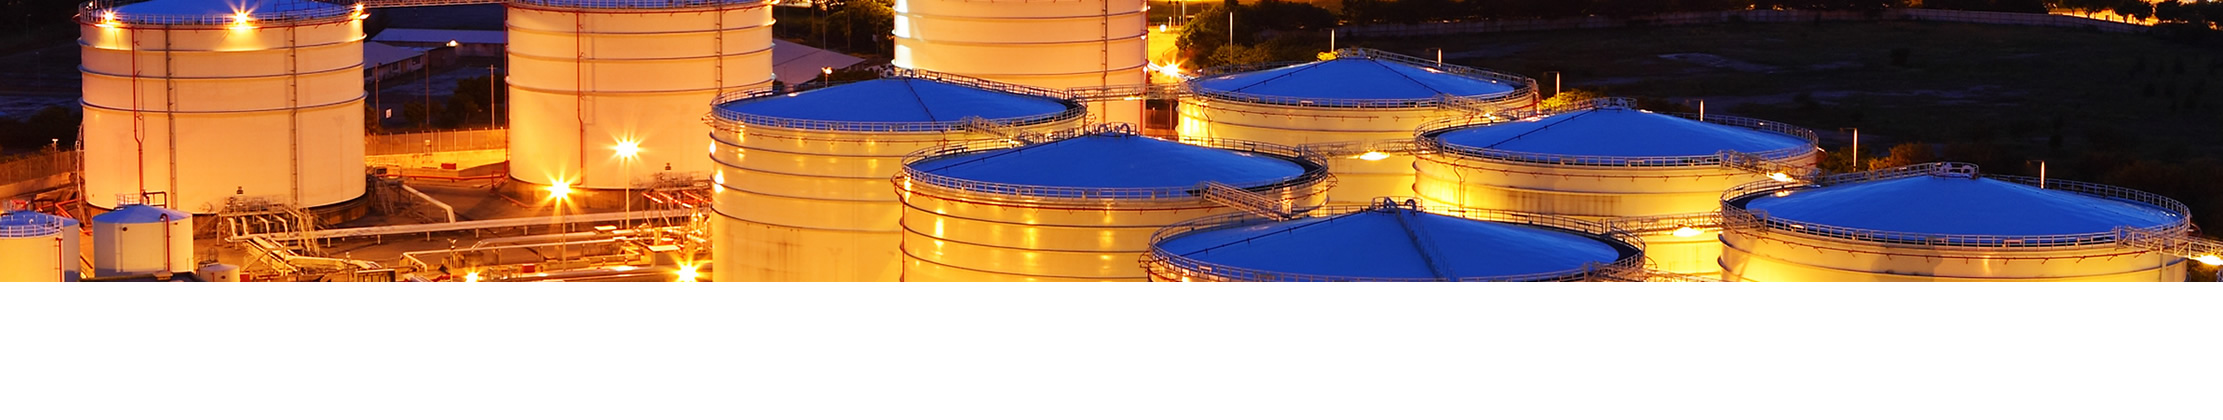 large fuel distribution tanks within the night